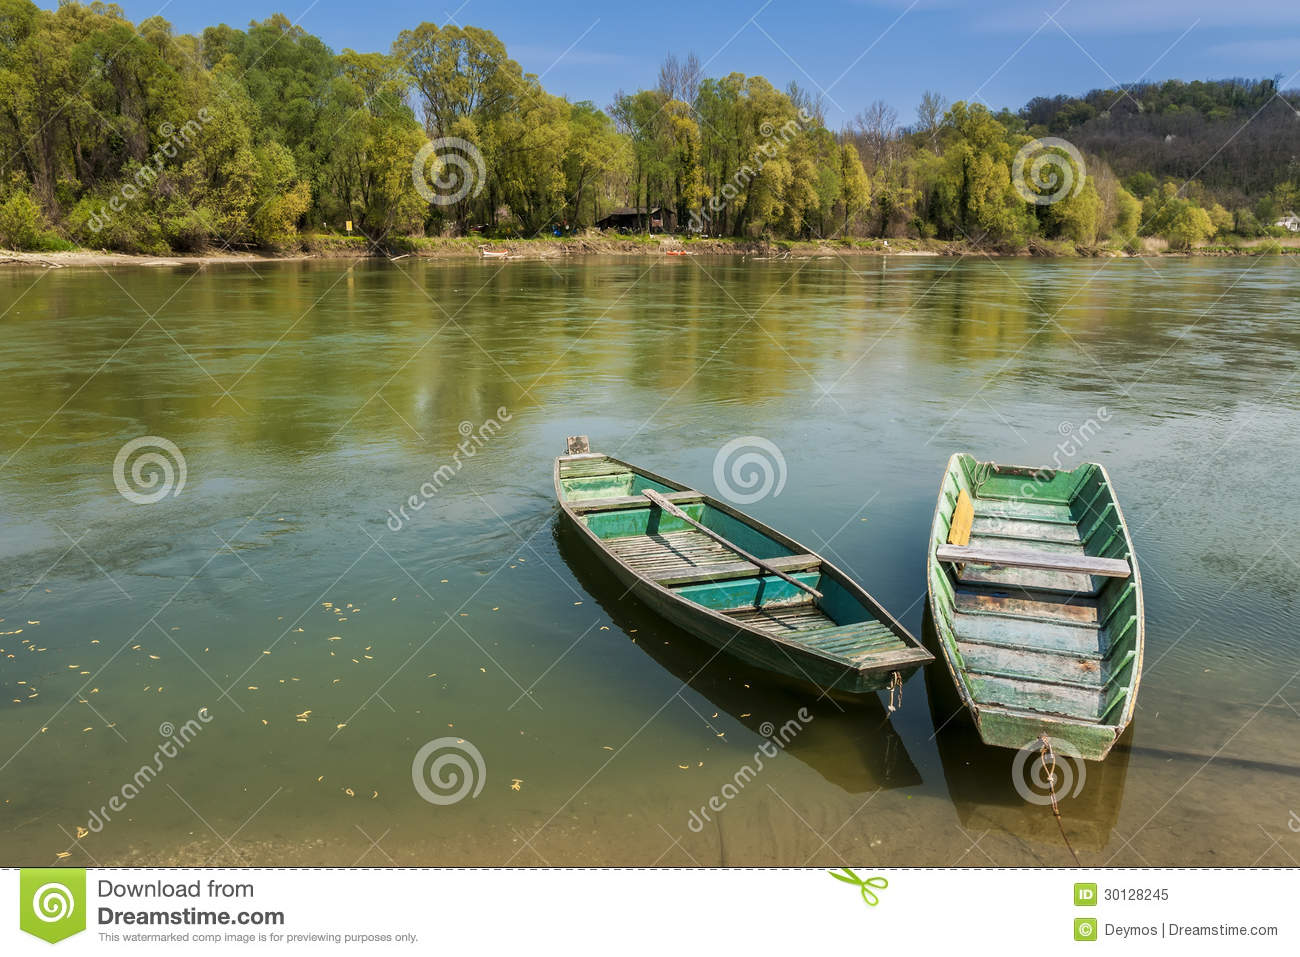 Two boats on the river bank